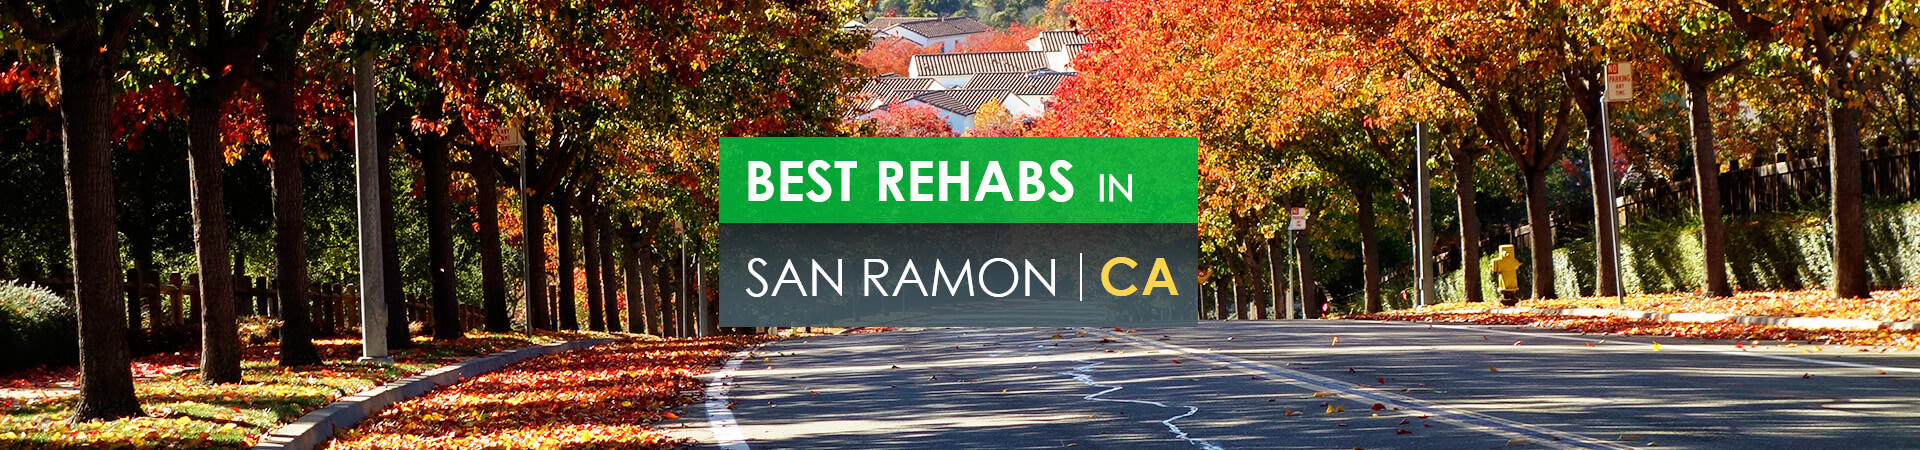 Best rehabs in San Ramon, CA